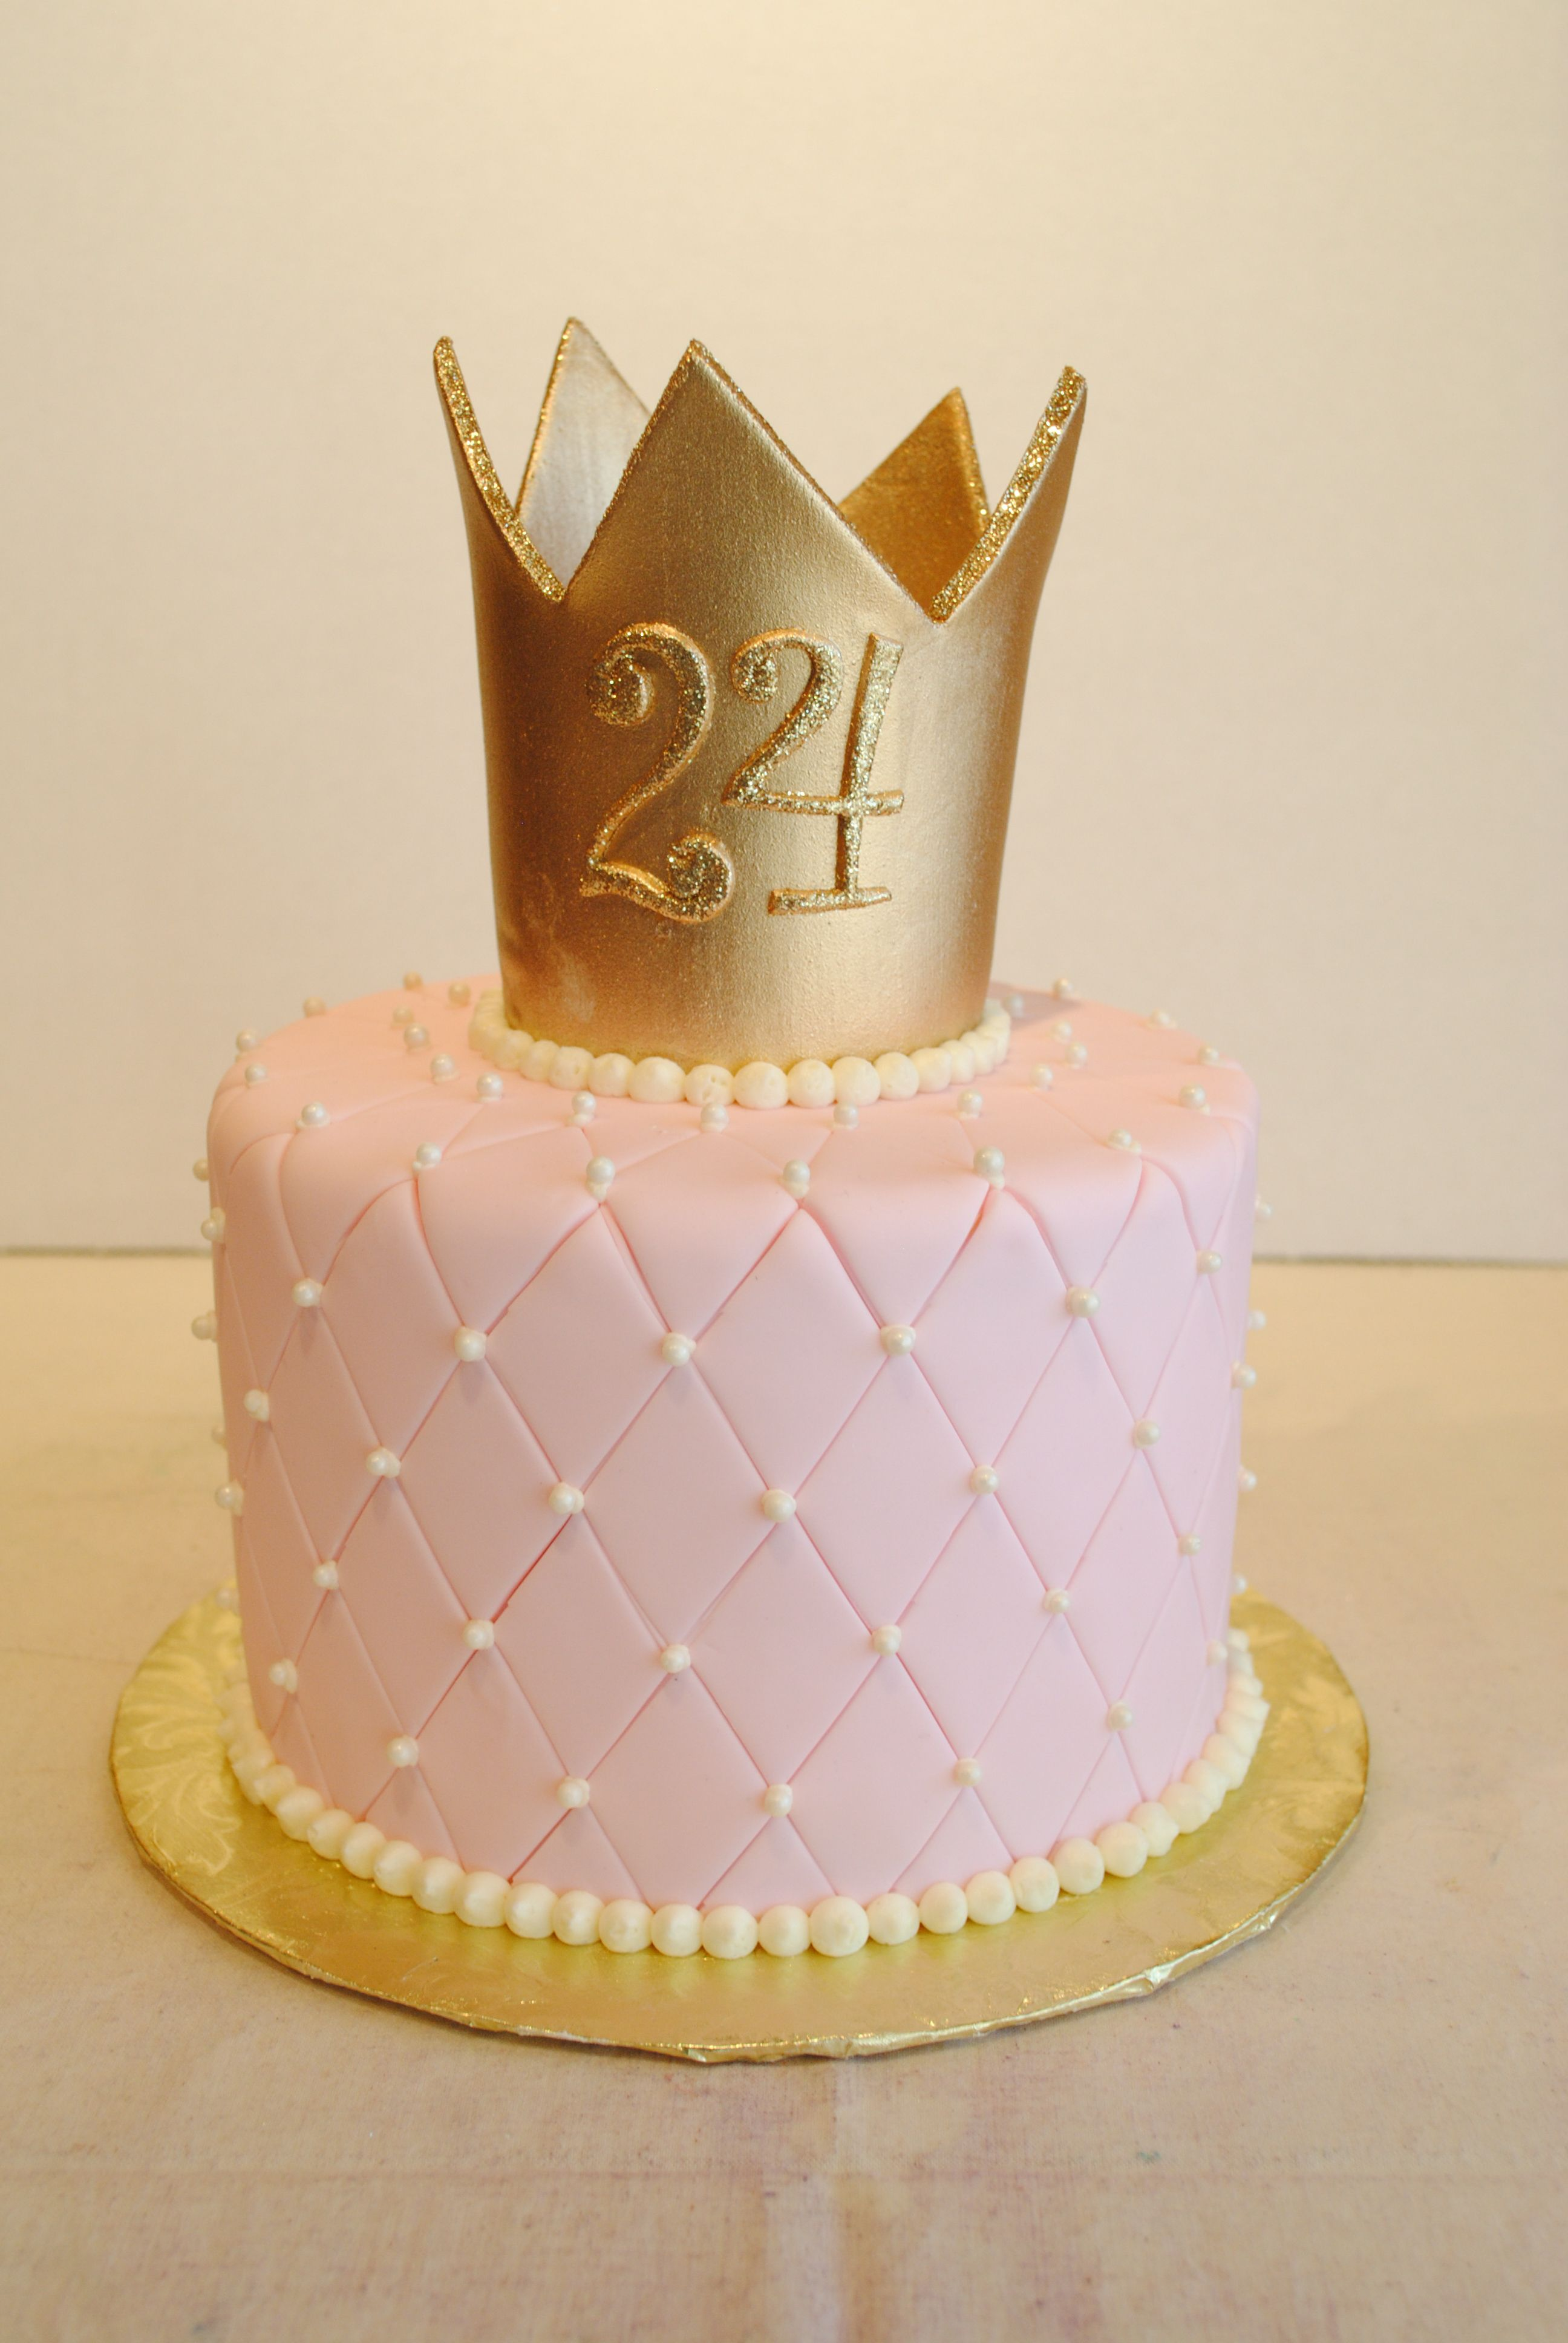 Princess cake. Fondant quilted pin cushion with gold crown and edible glitter. & Princess cake. Fondant quilted pin cushion with gold crown and ...